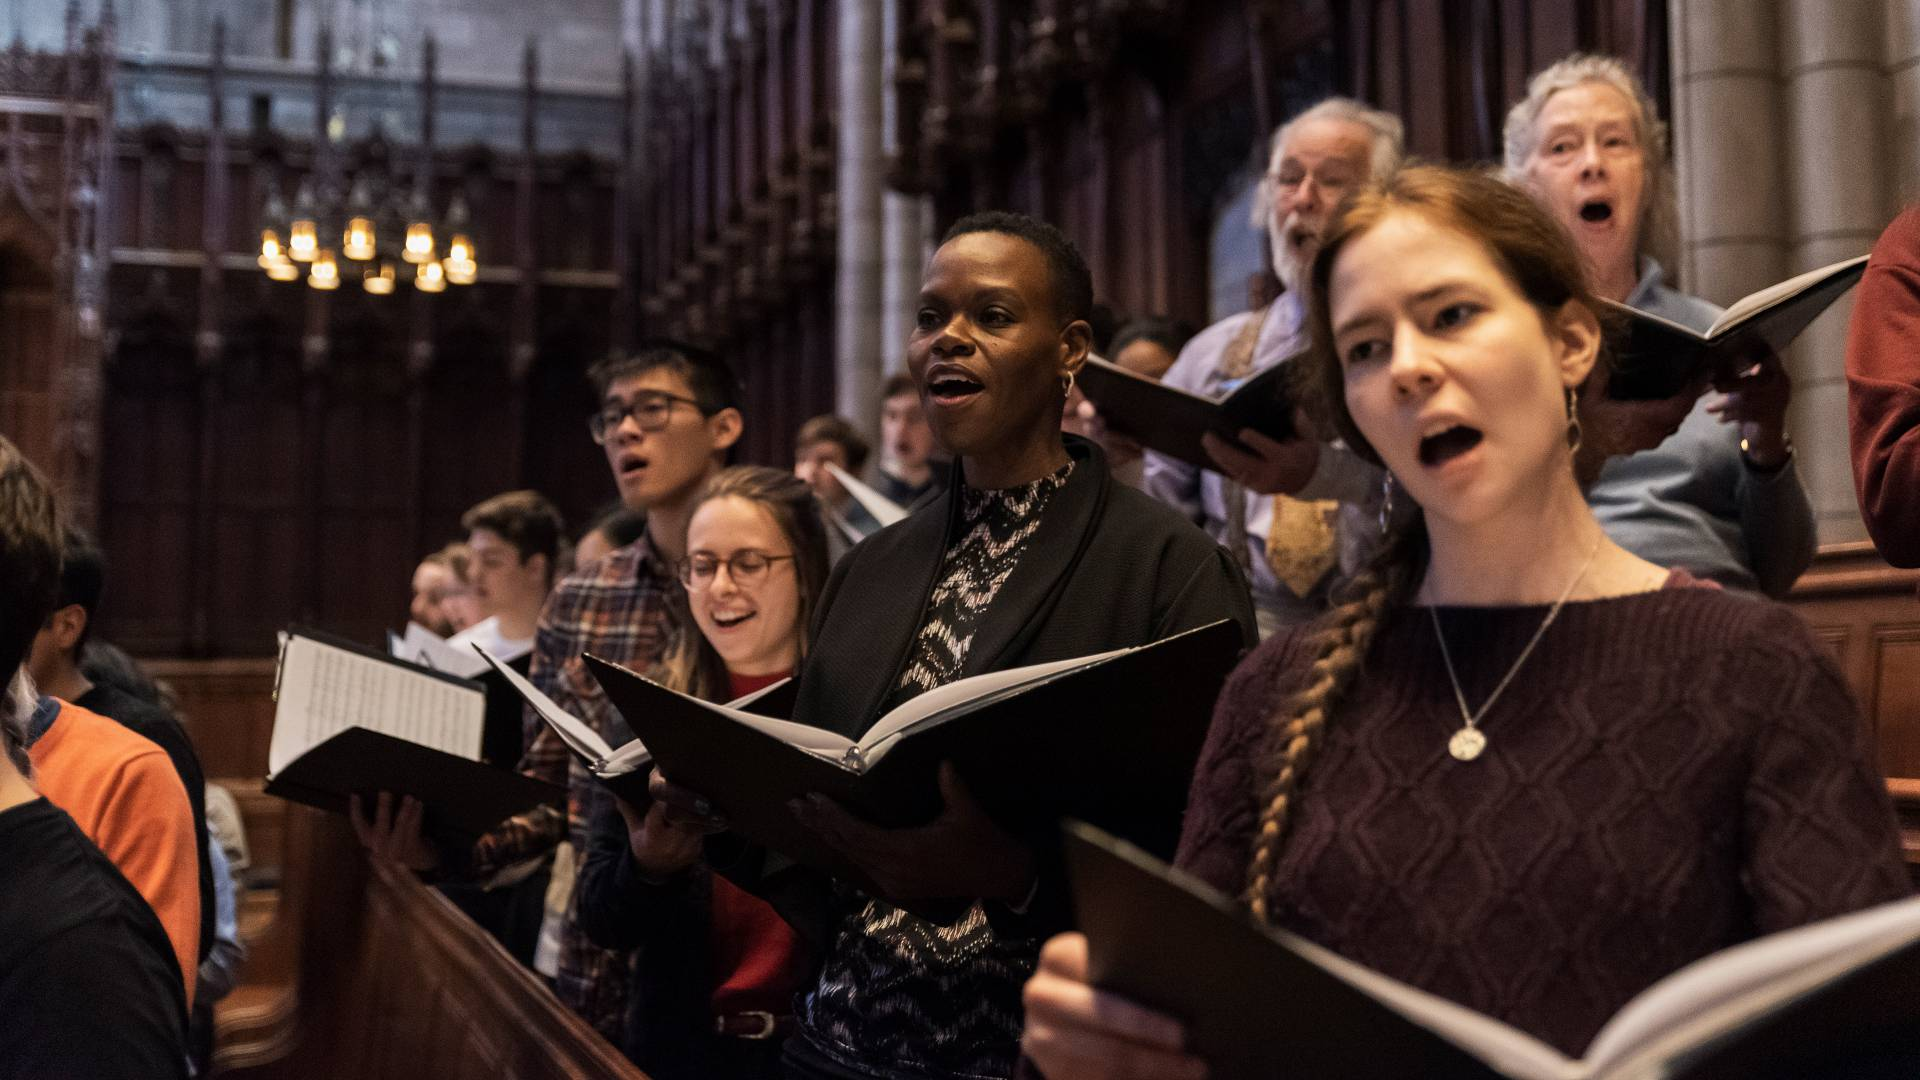 Members of Princeton Chapel Choir singing